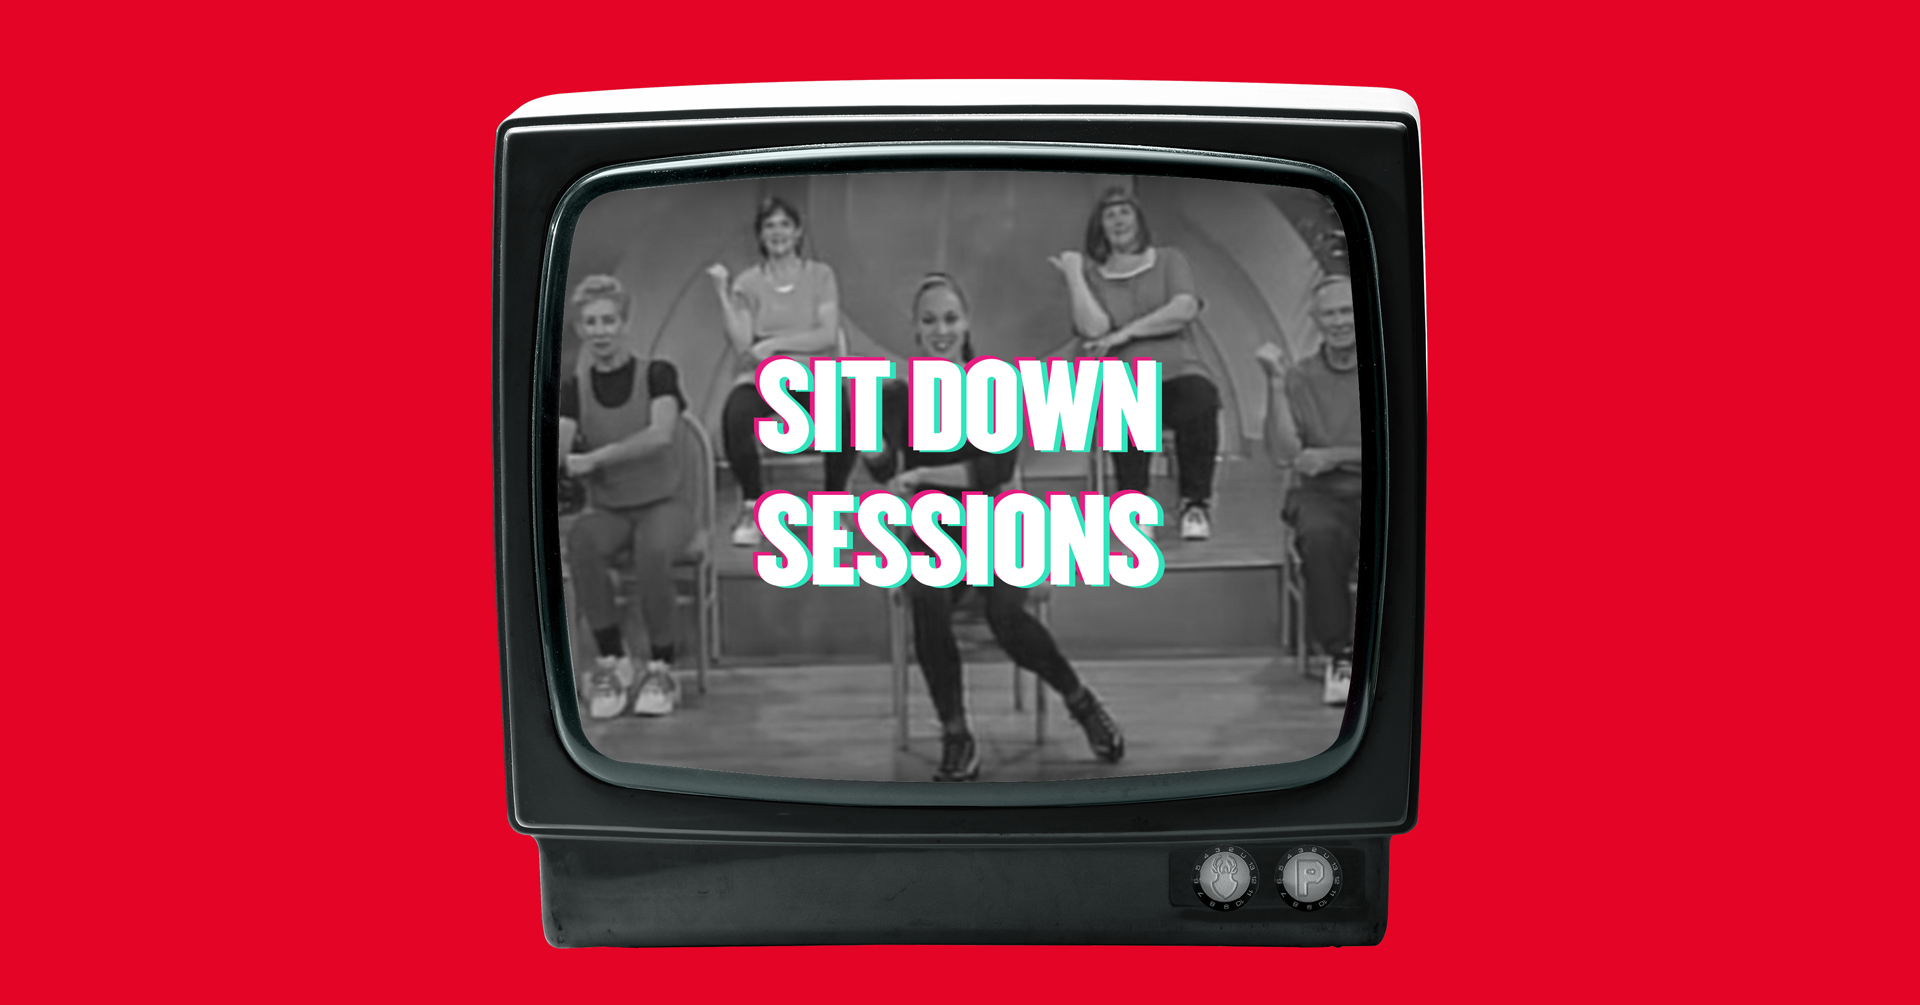 Sit Down Sessions Image